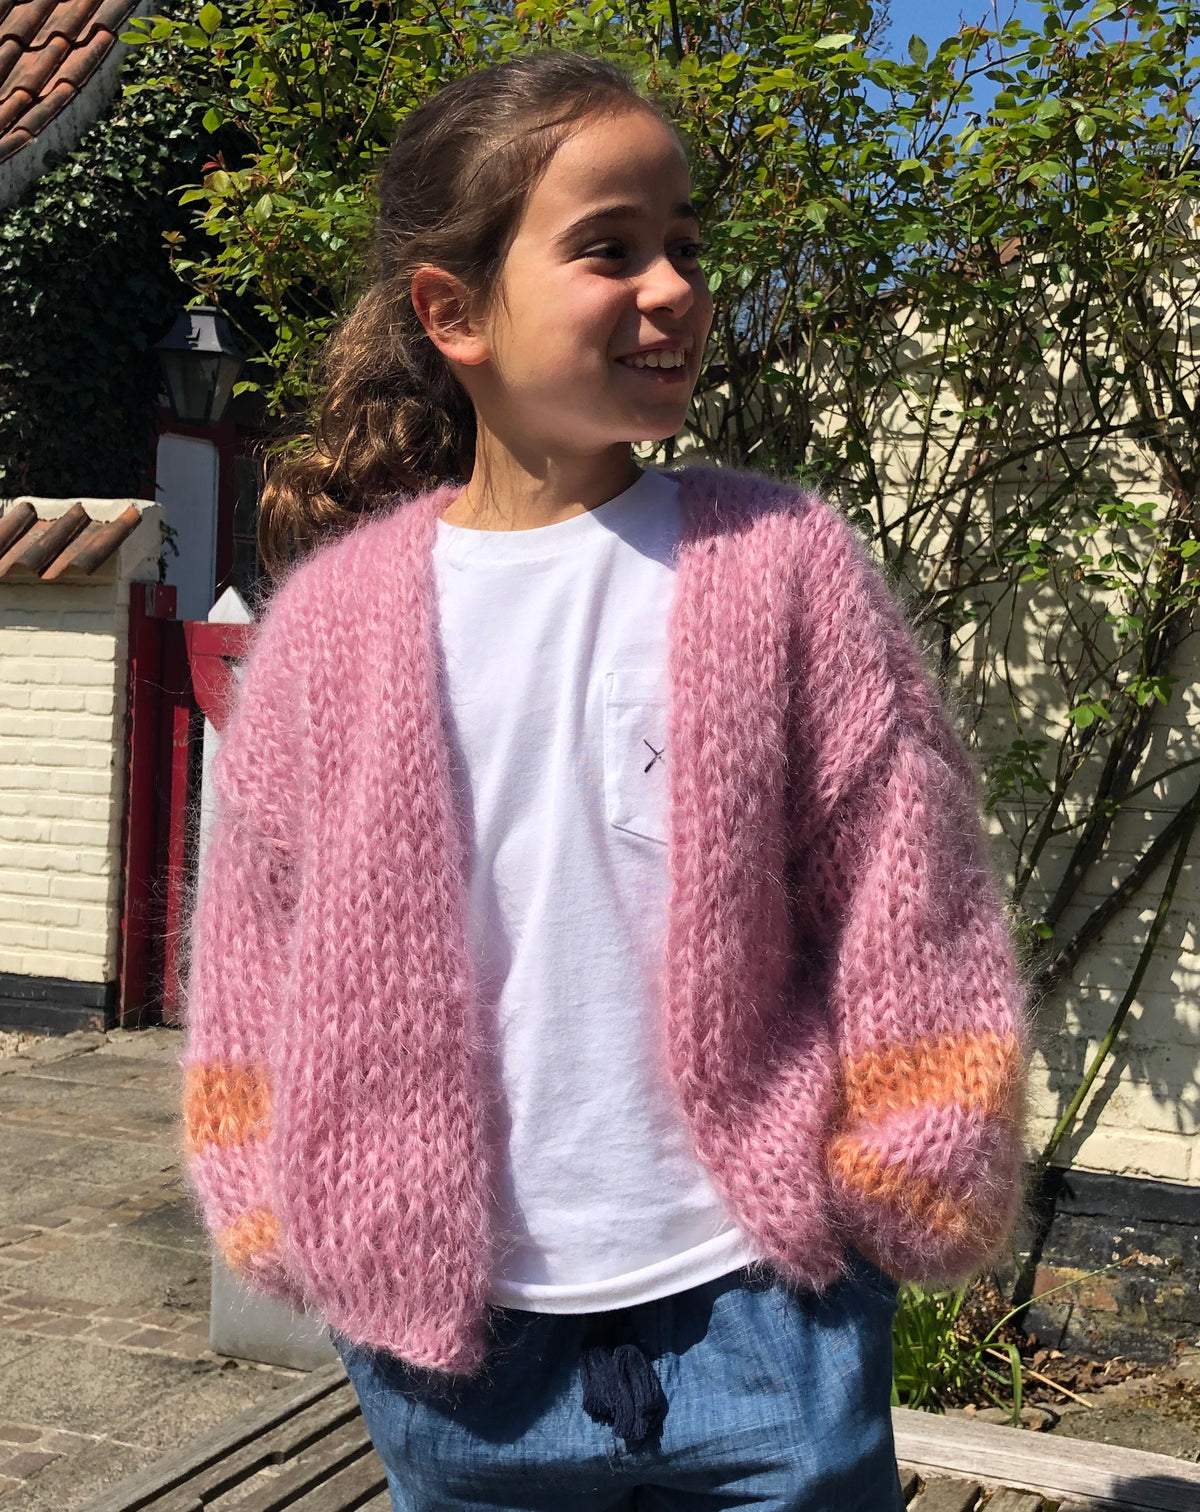 Kids Cardigan 10/12 years old